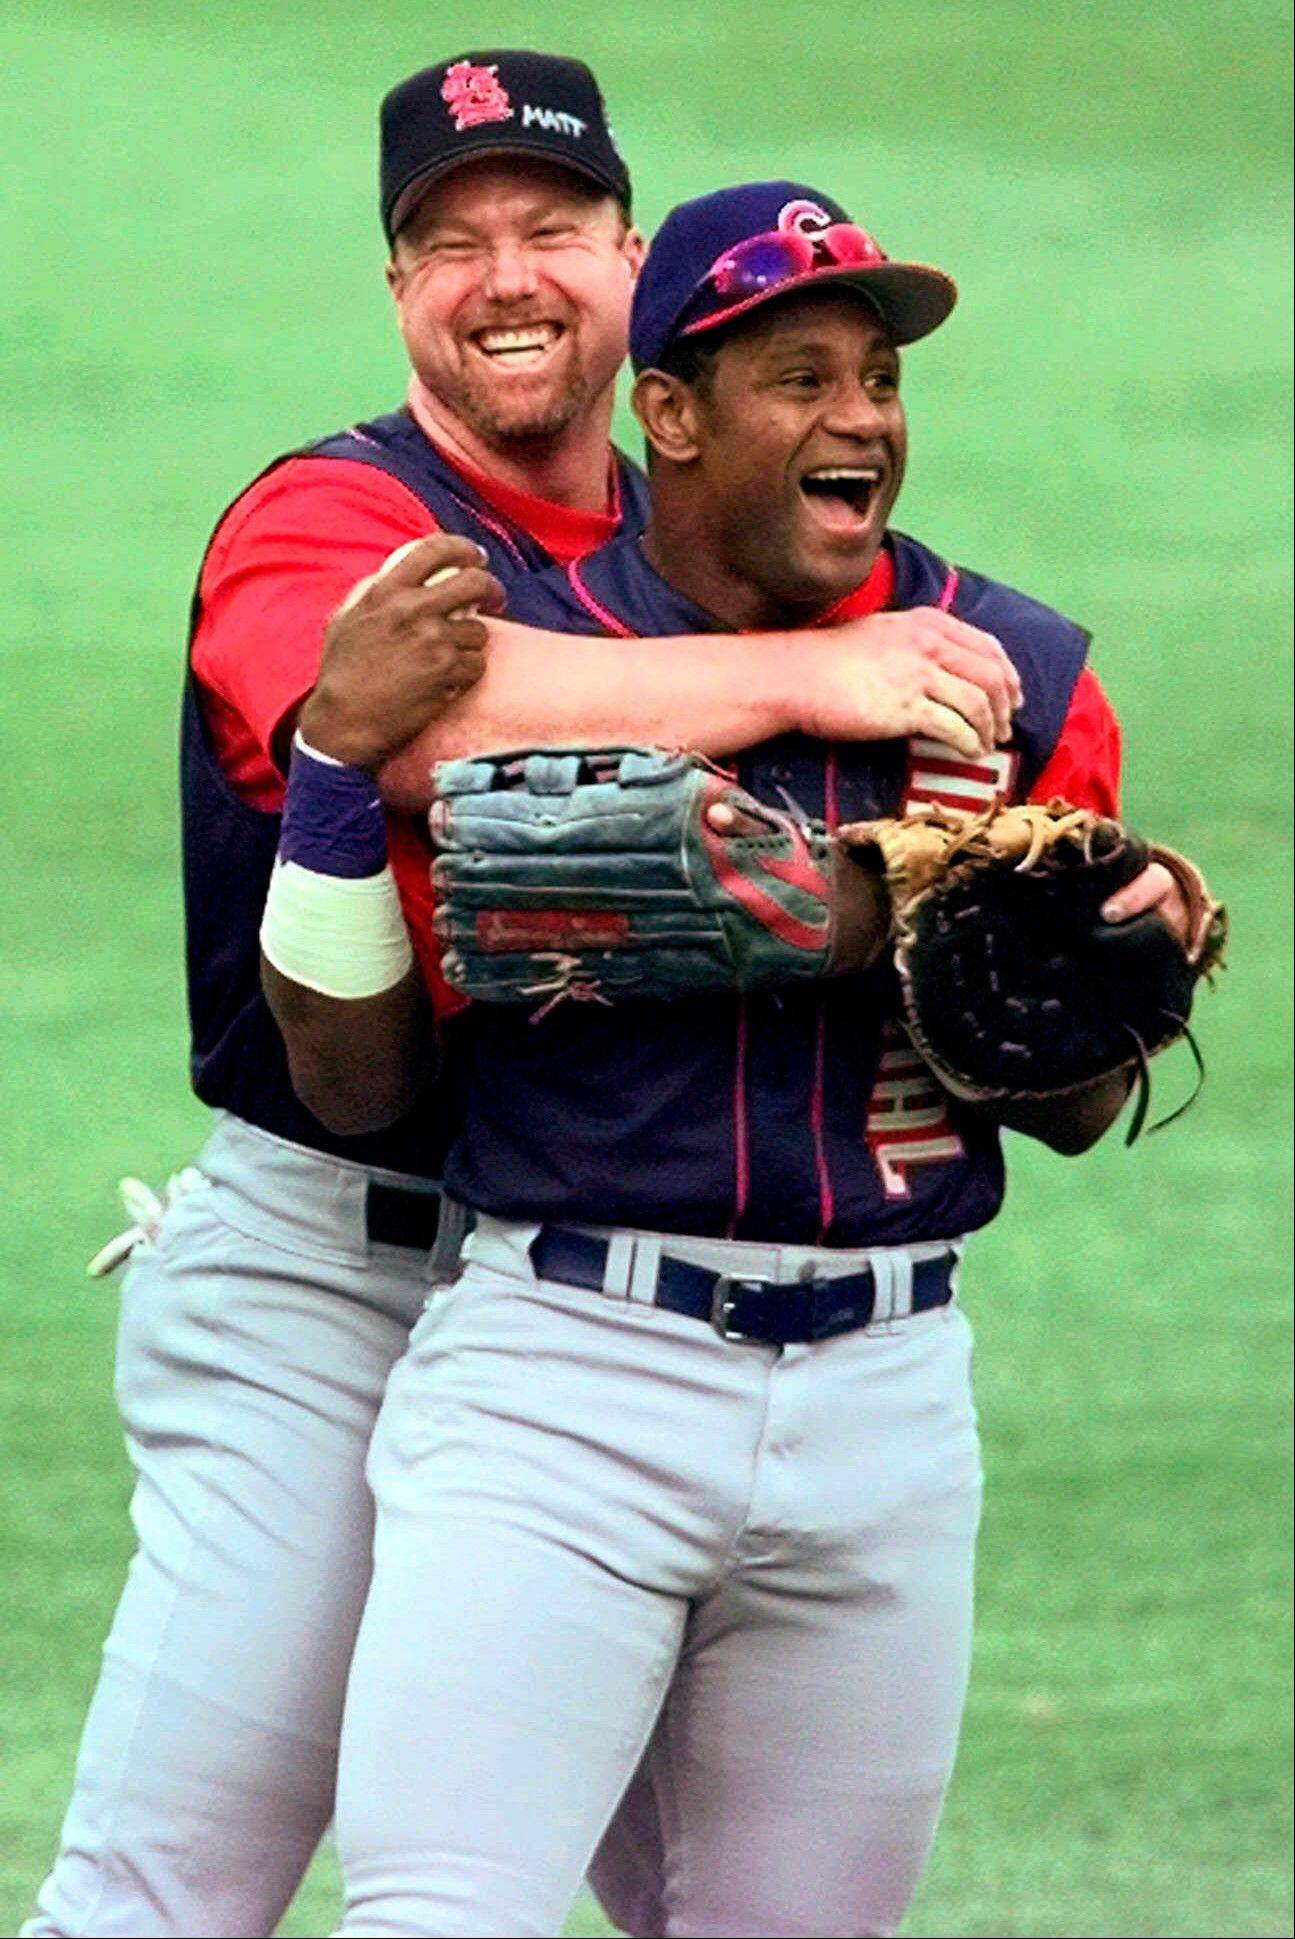 In this July 12, 1999, file photo, St. Louis Cardinals' Mark McGwire, left, hugs Chicago Cubs' Sammy Sosa in the outfield at Fenway Park during a workout for baseball's All-Star Game in Boston. In a Wednesday, Jan. 23, 2013, interview on the website Ustream.com, Sosa said that he thinks he and fellow steroid-tainted star McGwire belong in the Hall of Fame, that the Cubs should retire his number, and he left open the possibility of running for president of the Dominican Republic.